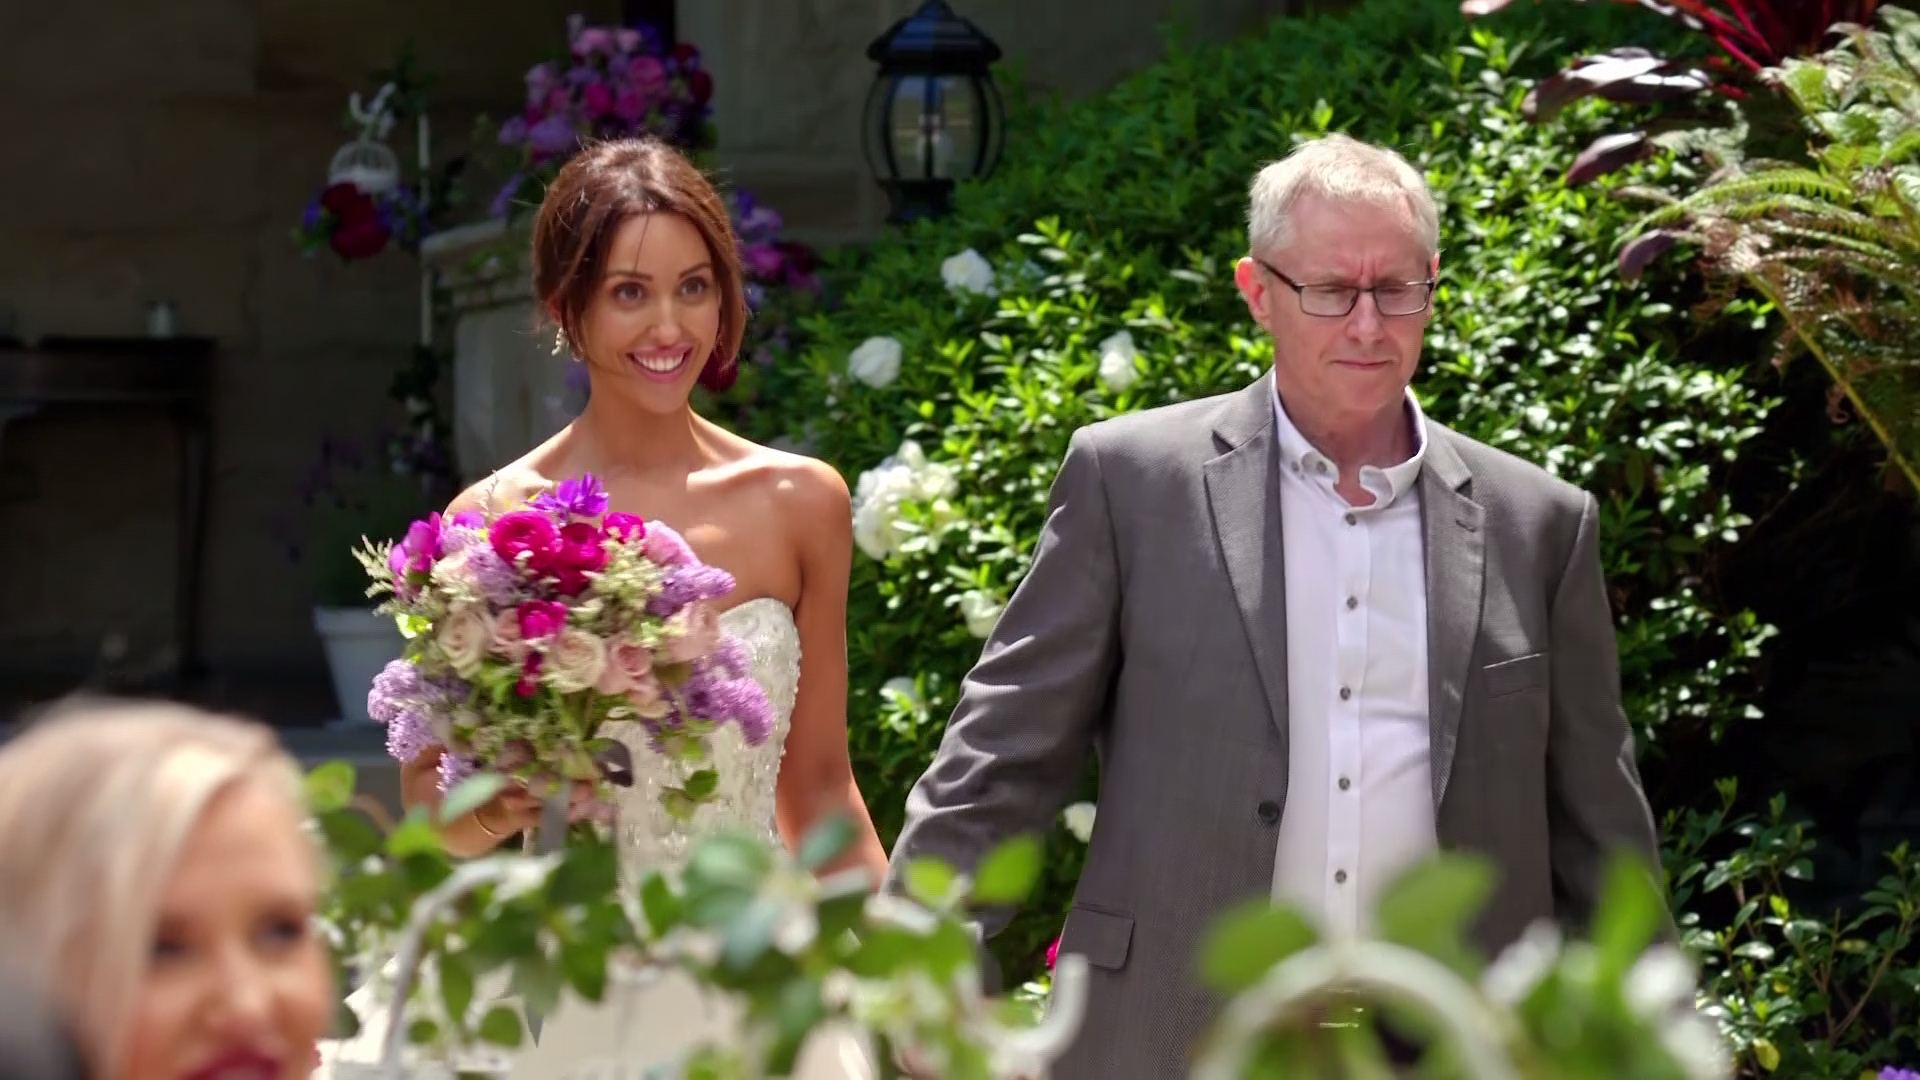 Episode 18 recap: Love blossoms with new weddings as Lizzie returns to the experiment